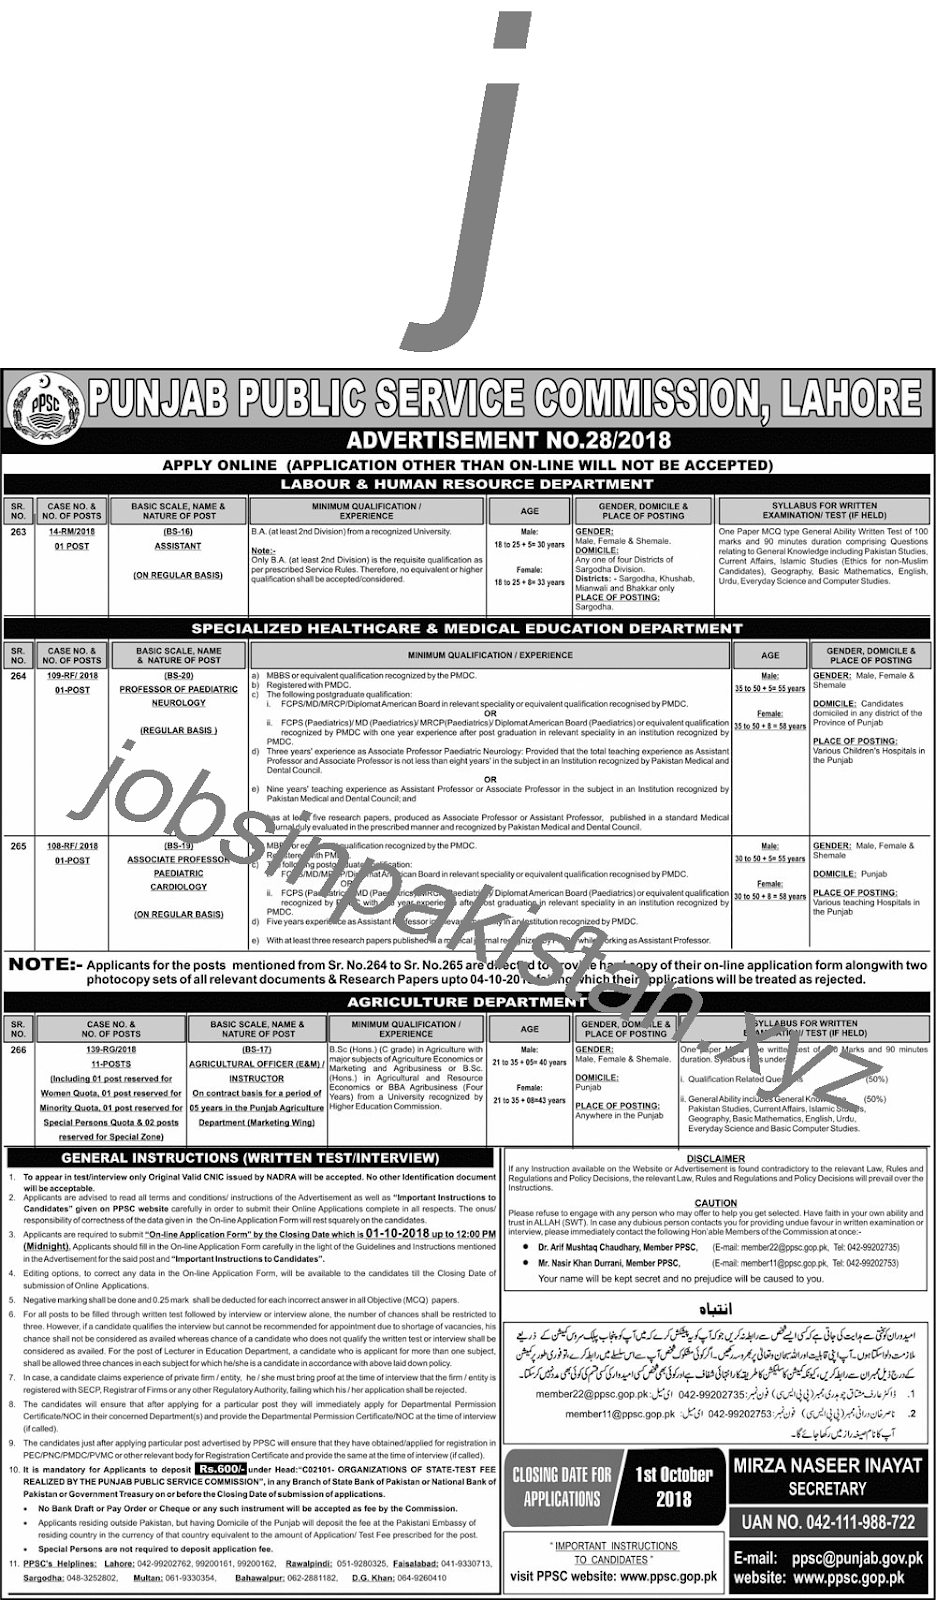 PPSC Latest Jobs Advertisement No 28/2018